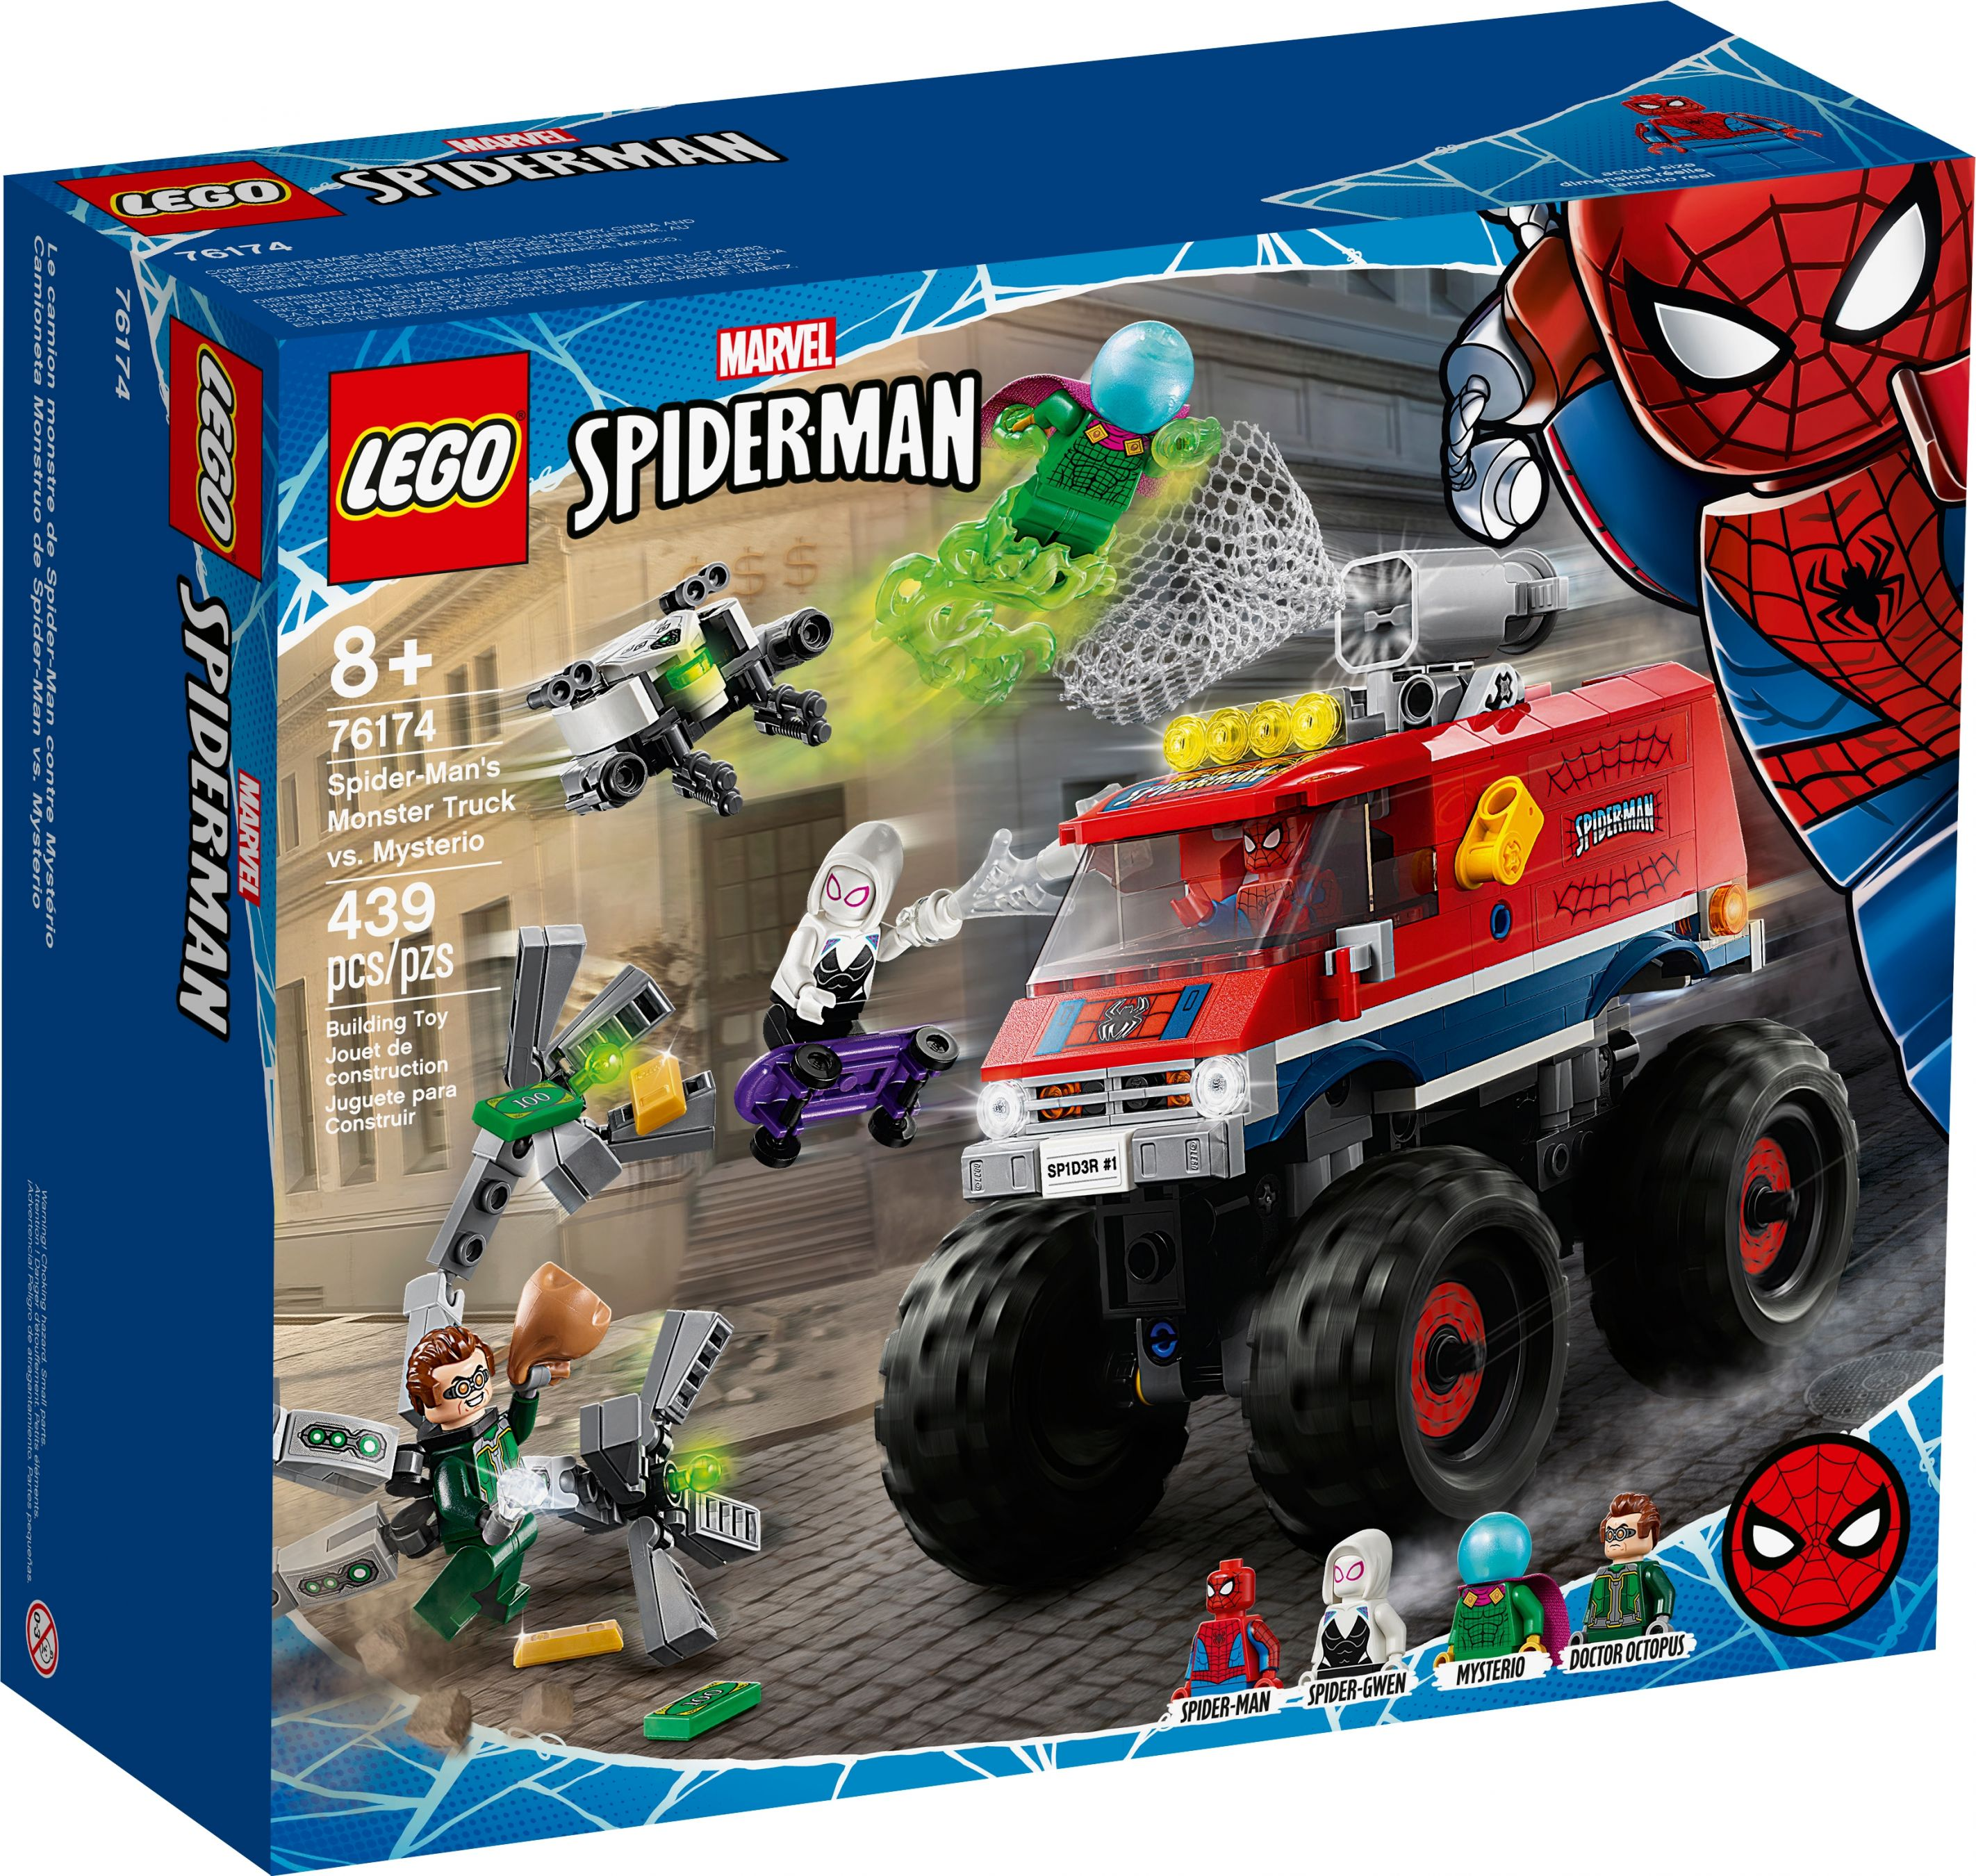 LEGO Super Heroes 76174 Spider-Mans Monstertruck vs. Mysterio LEGO_76174_alt1.jpg